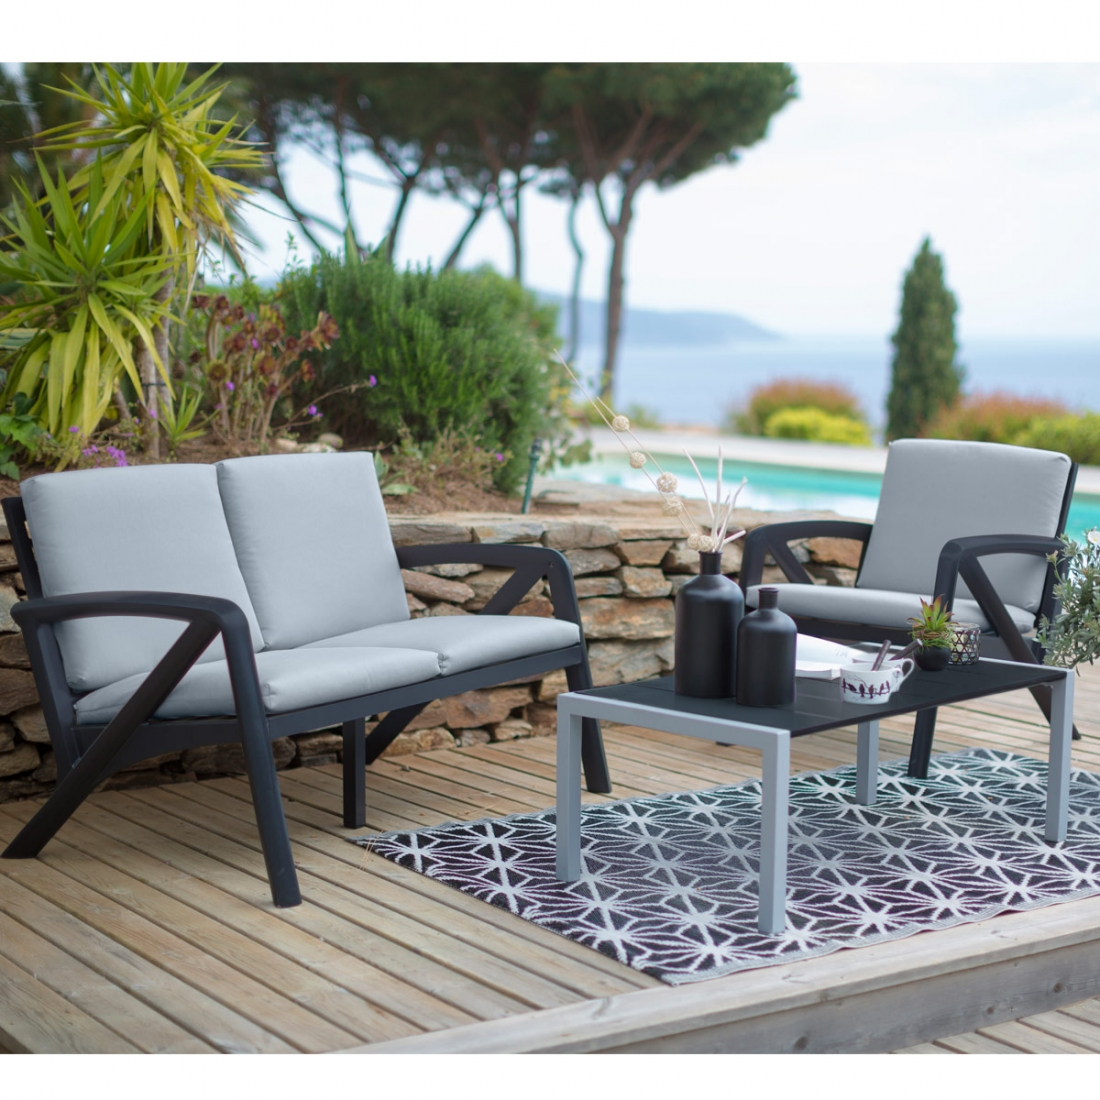 Salon de jardin lounge sunday barcelone design grosfillex for But salon de jardin